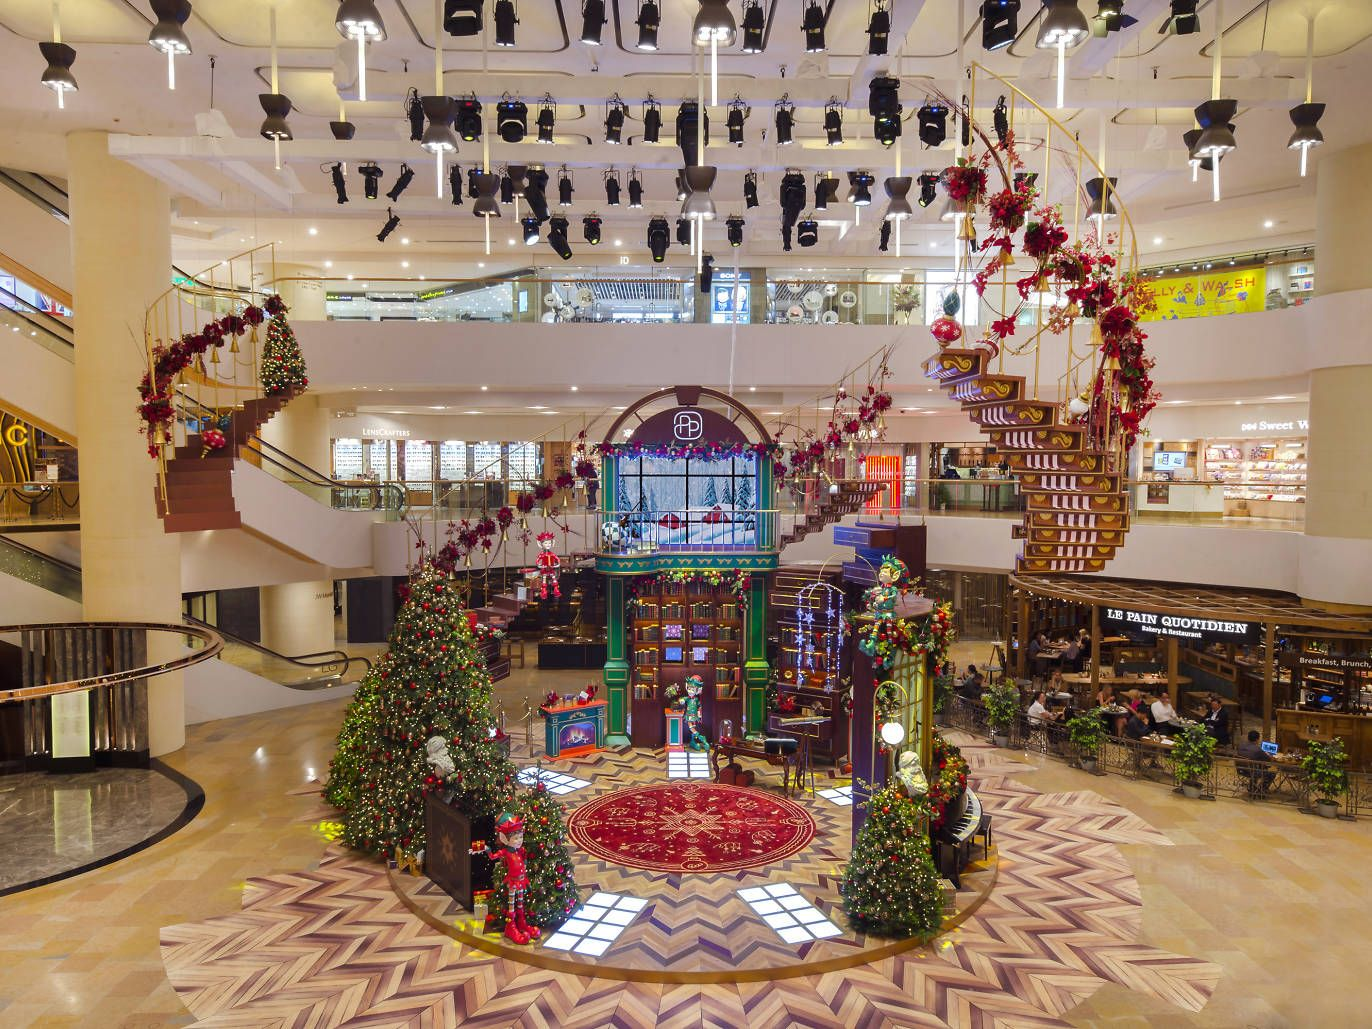 Best Christmas Displays In Hong Kong Christmas Decor Inspiration Christmas Display Fun Christmas Decorations